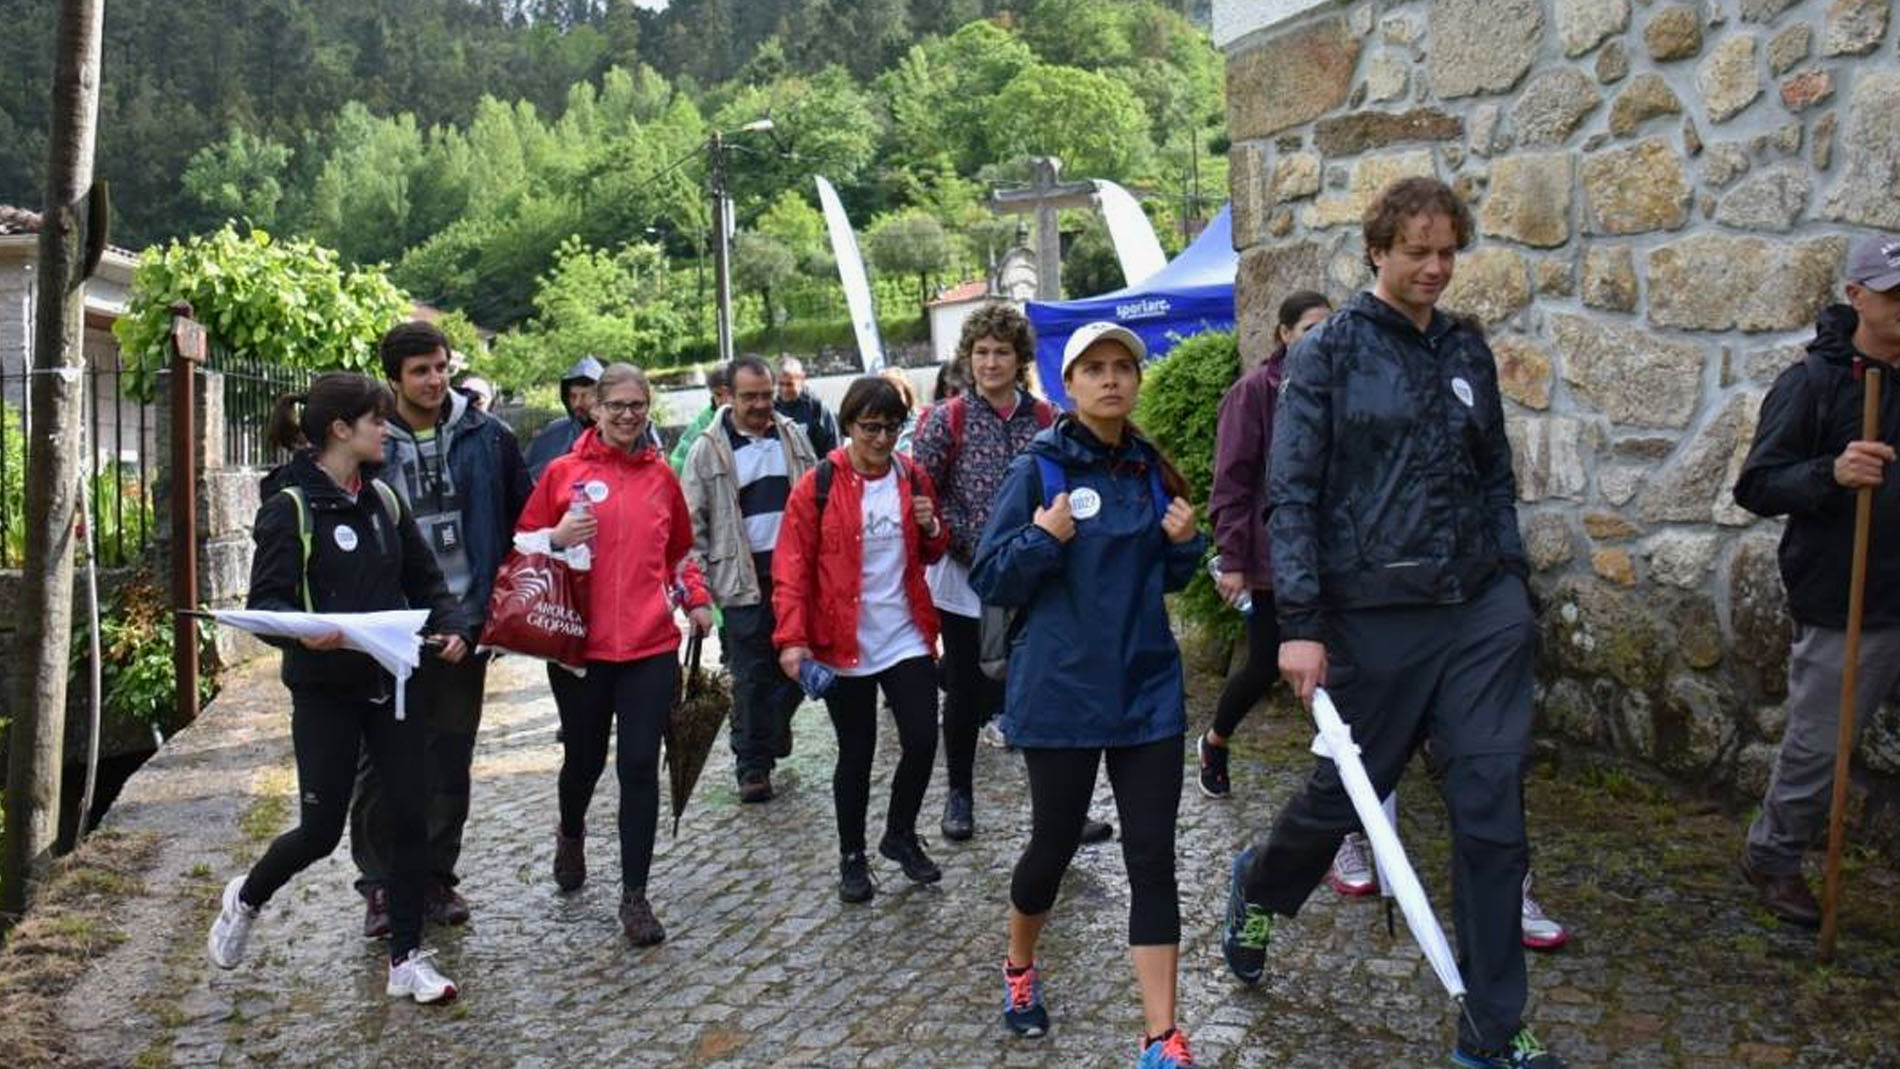 Arouca Pedestrian Trails arranca abençoado!